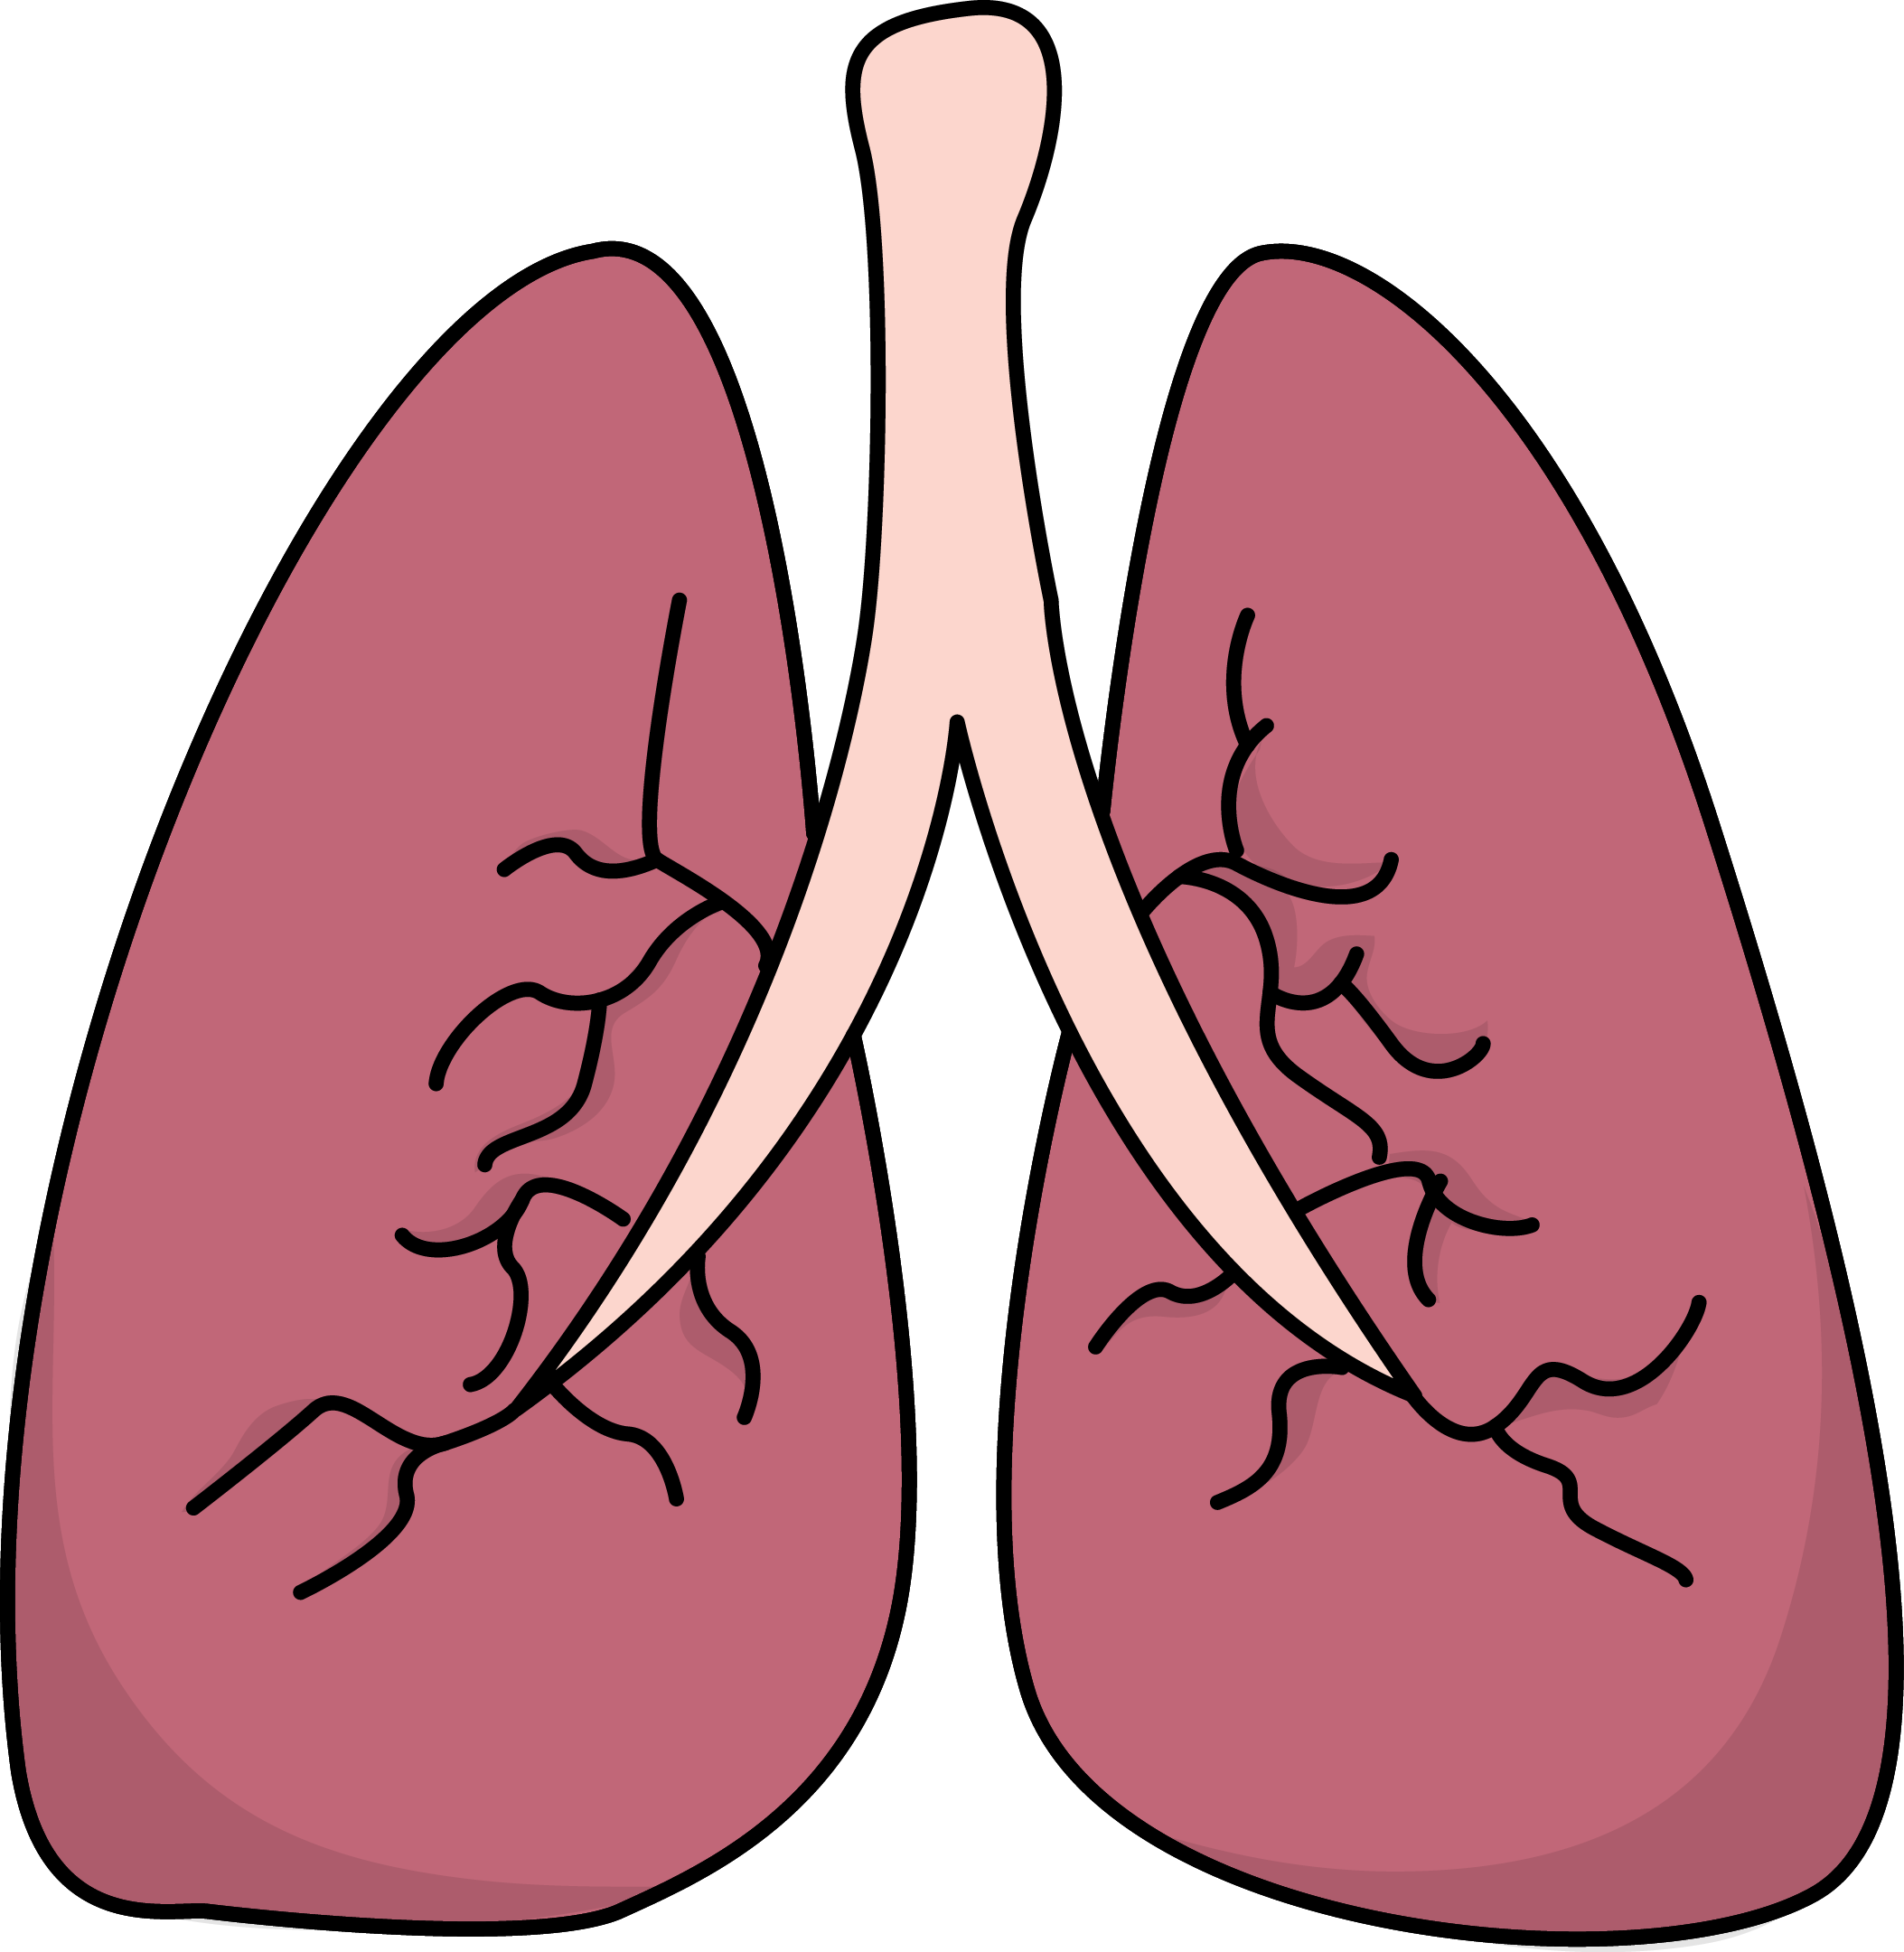 The Human Lung For Kids Clipart With Labels - ClipArt Best